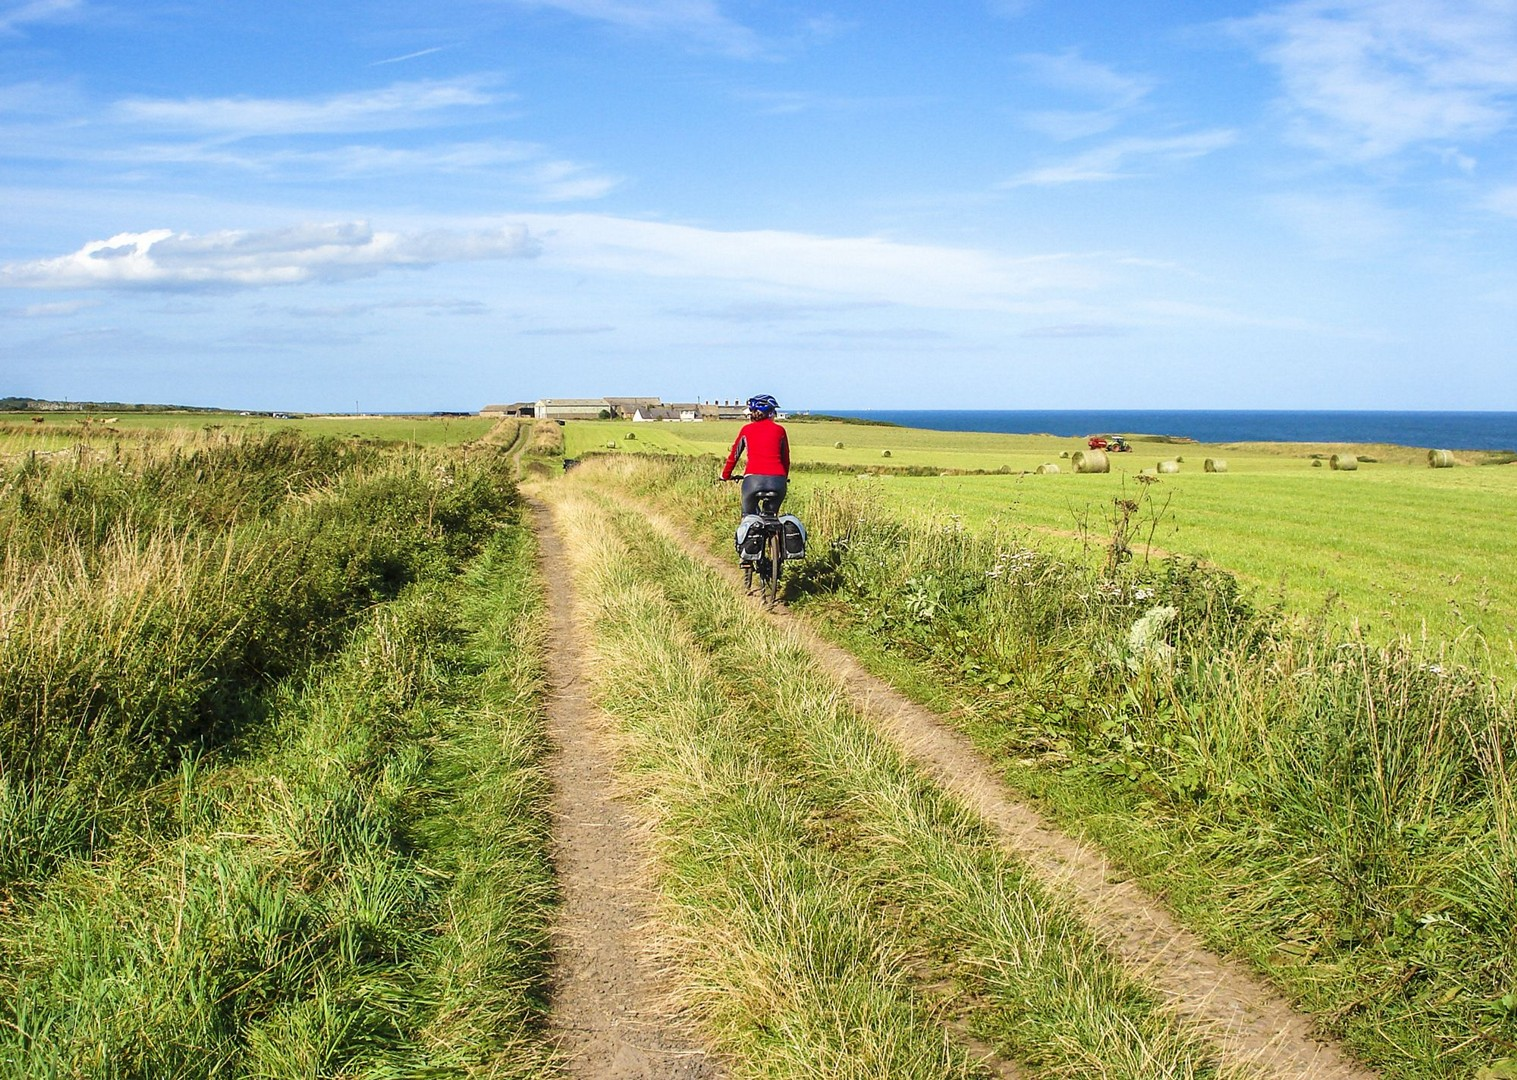 uk-coast-northumberland-cycling-rural-fields-tour-self-guided.jpg - UK - Northumberland - Alnmouth - Guided Leisure Cycling Holiday - Leisure Cycling